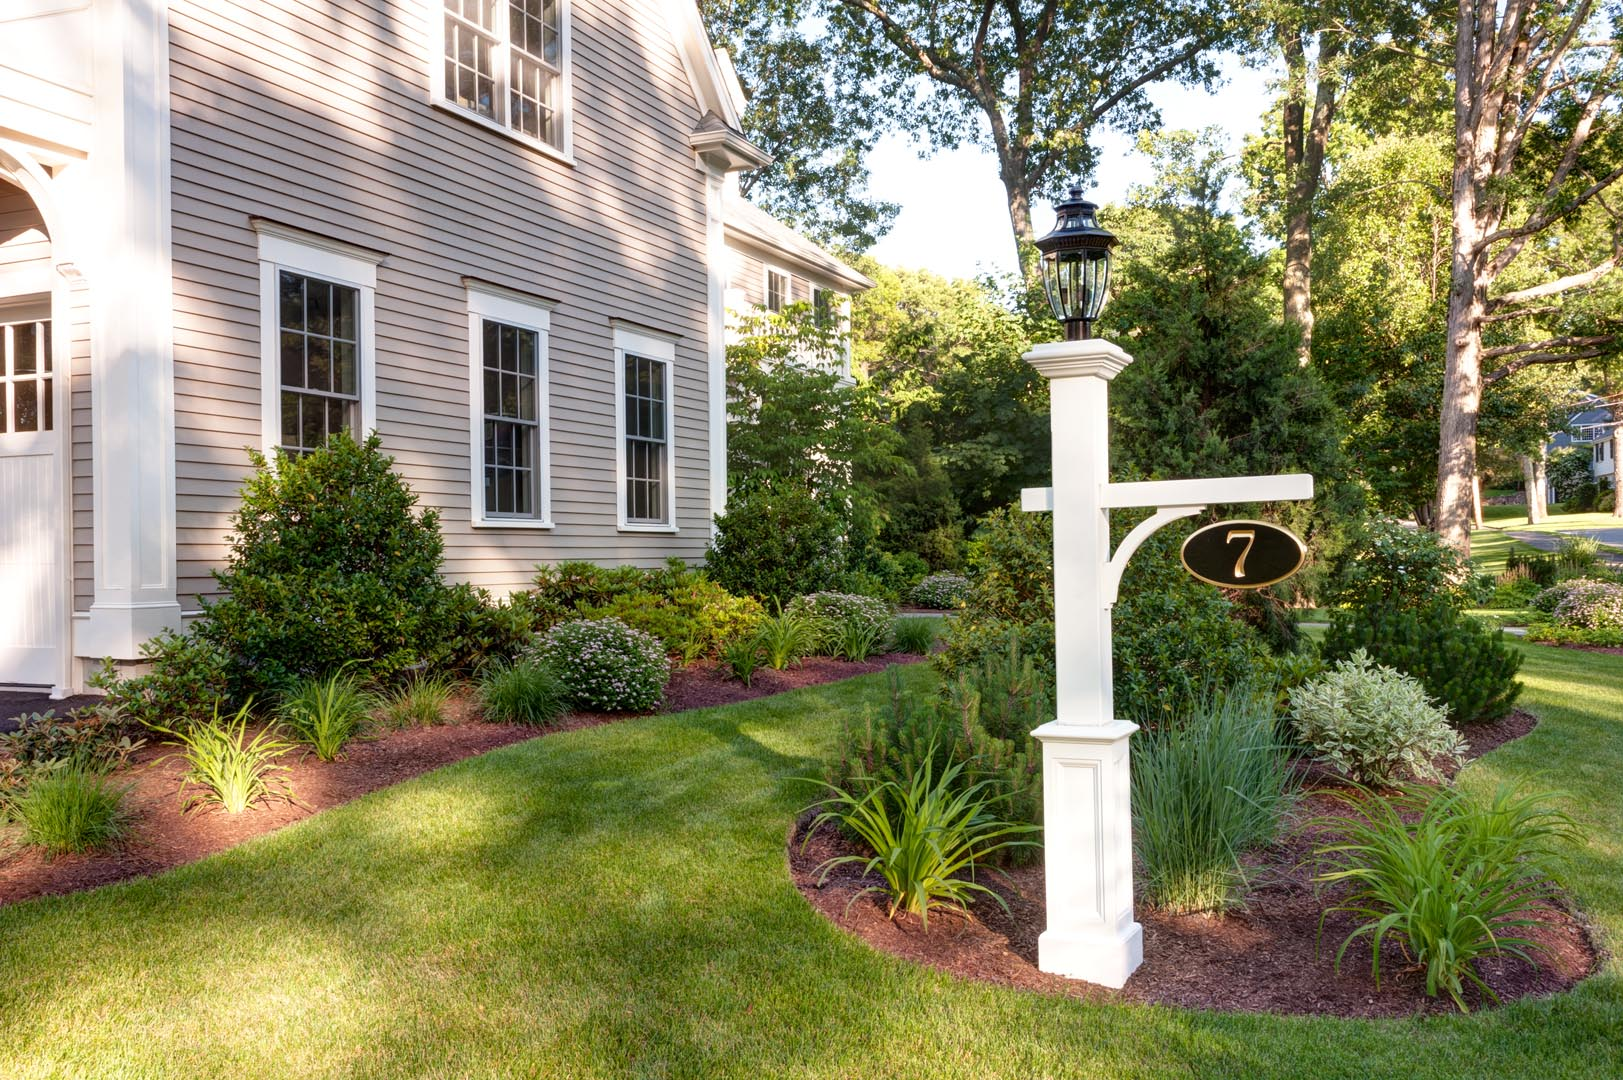 Landscape Lighting Garden Post : Nilsen landscape design ? lighting line